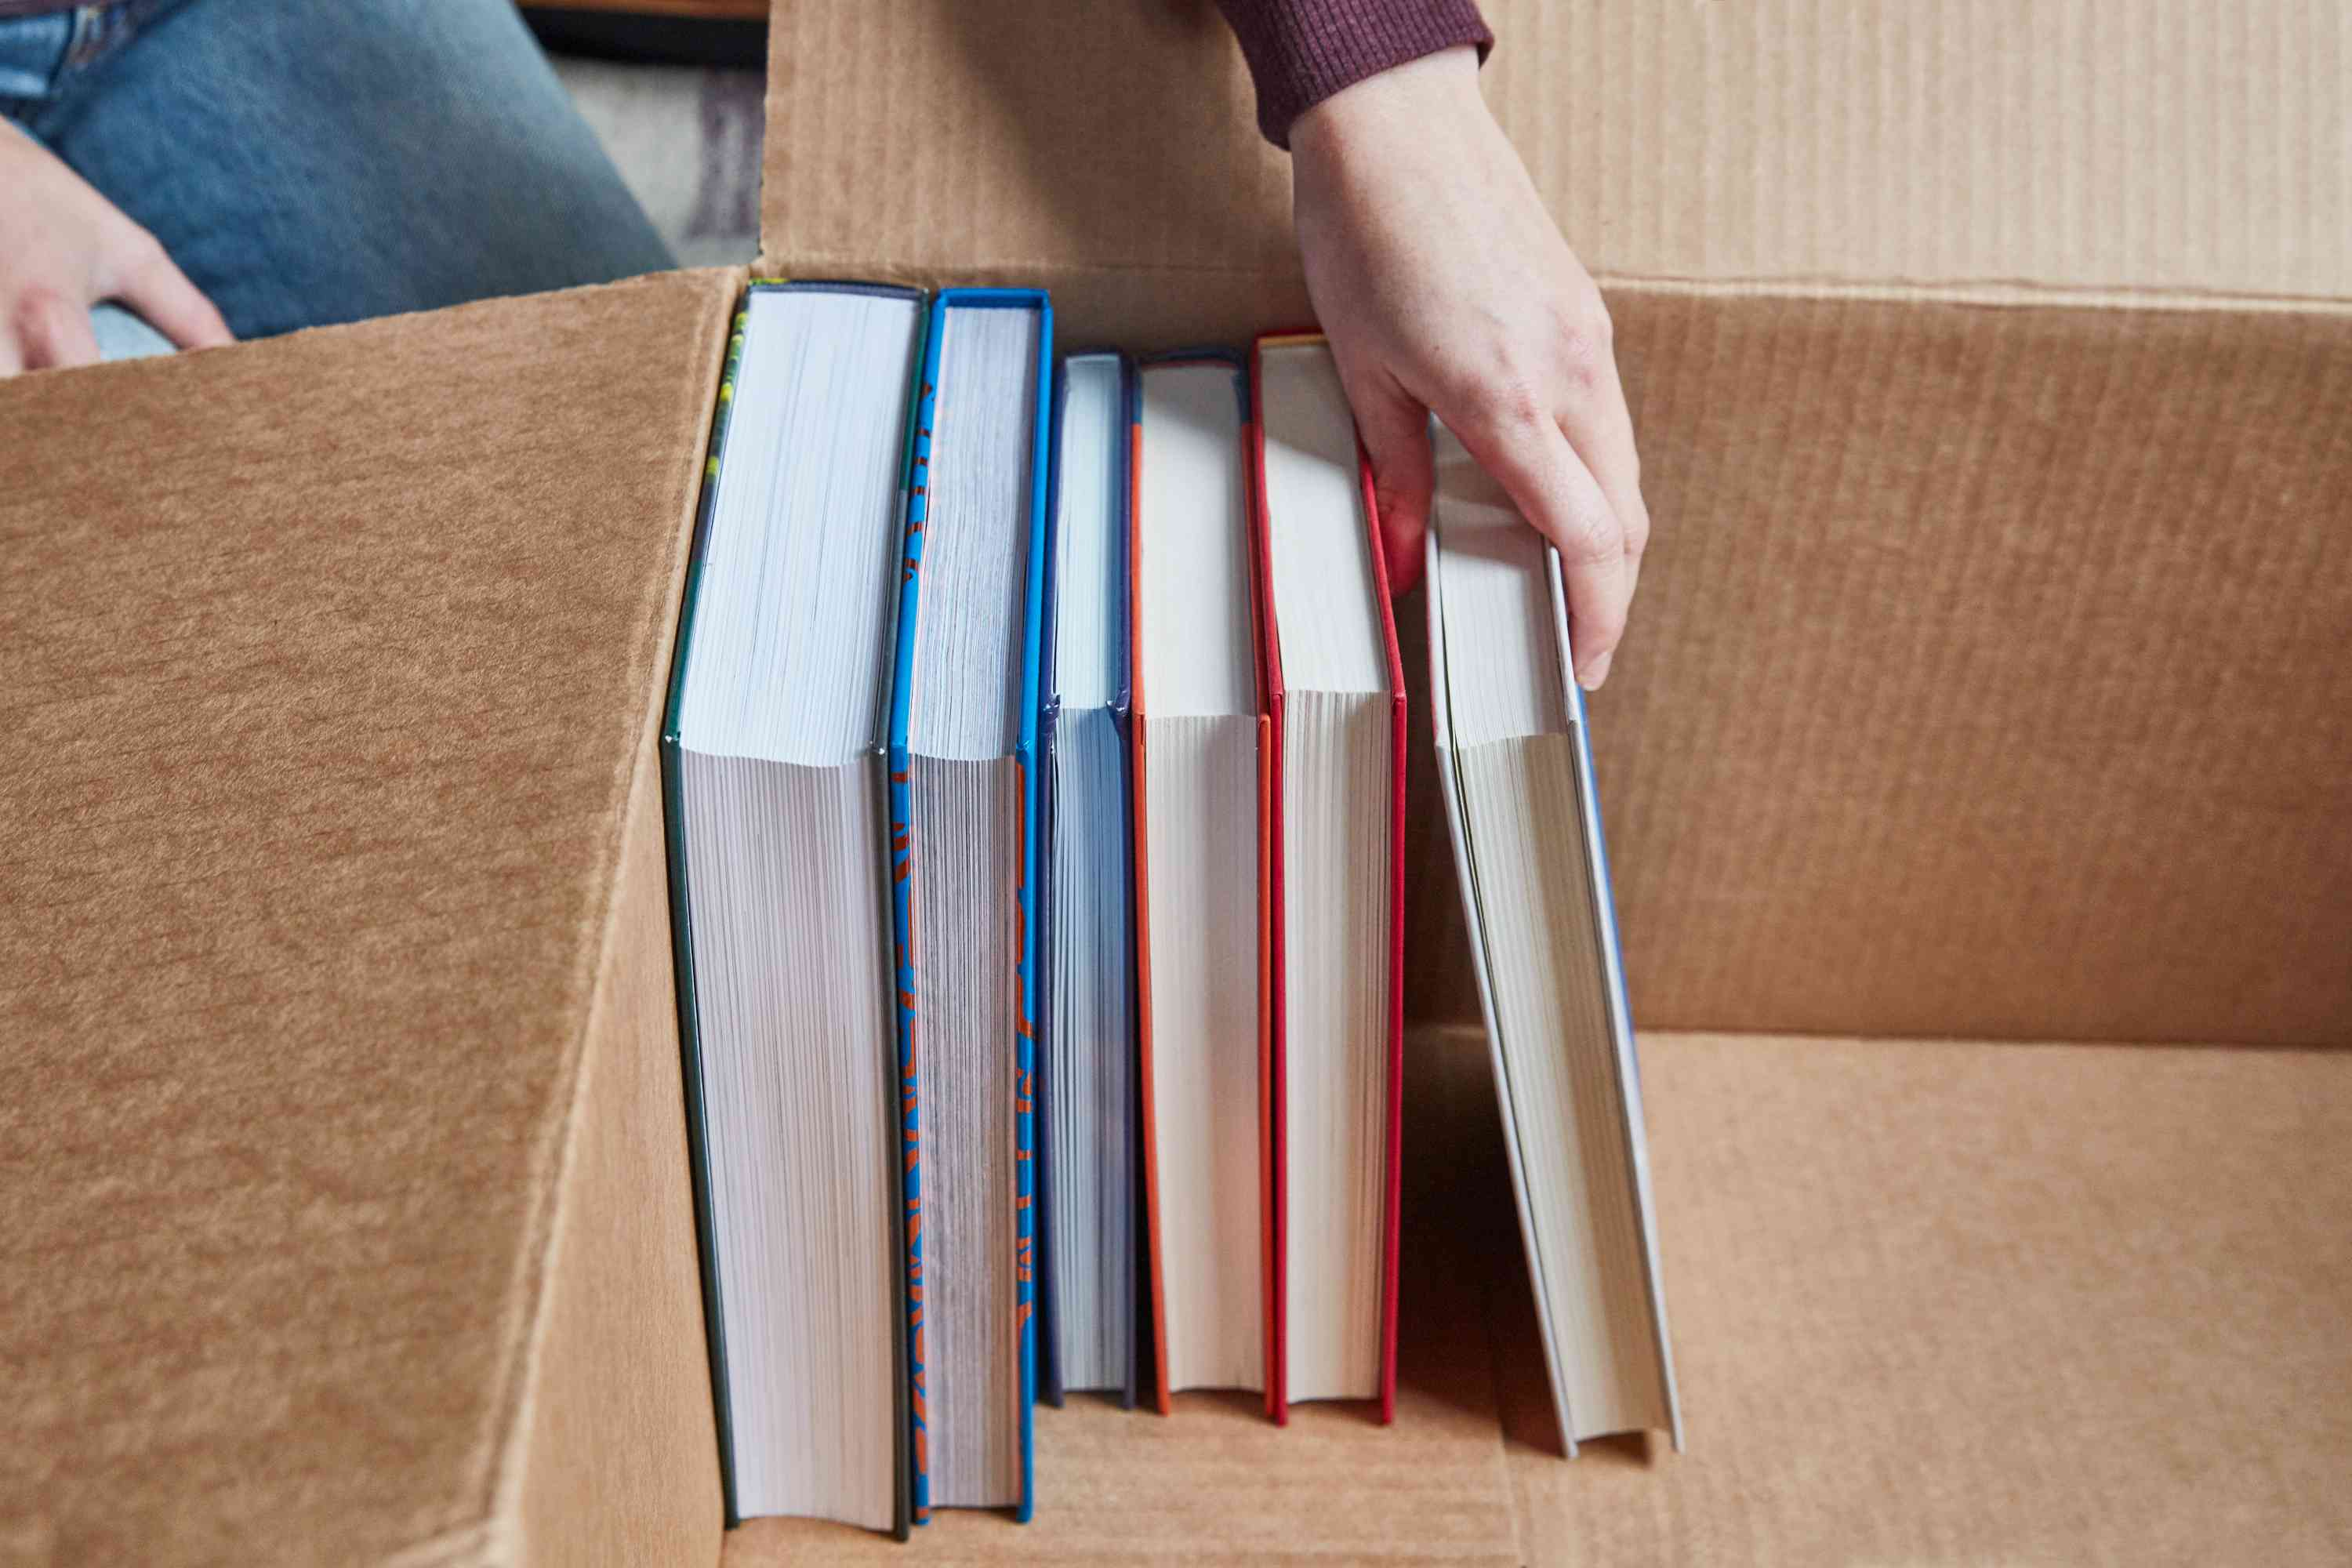 the proper way to pack hardcover books